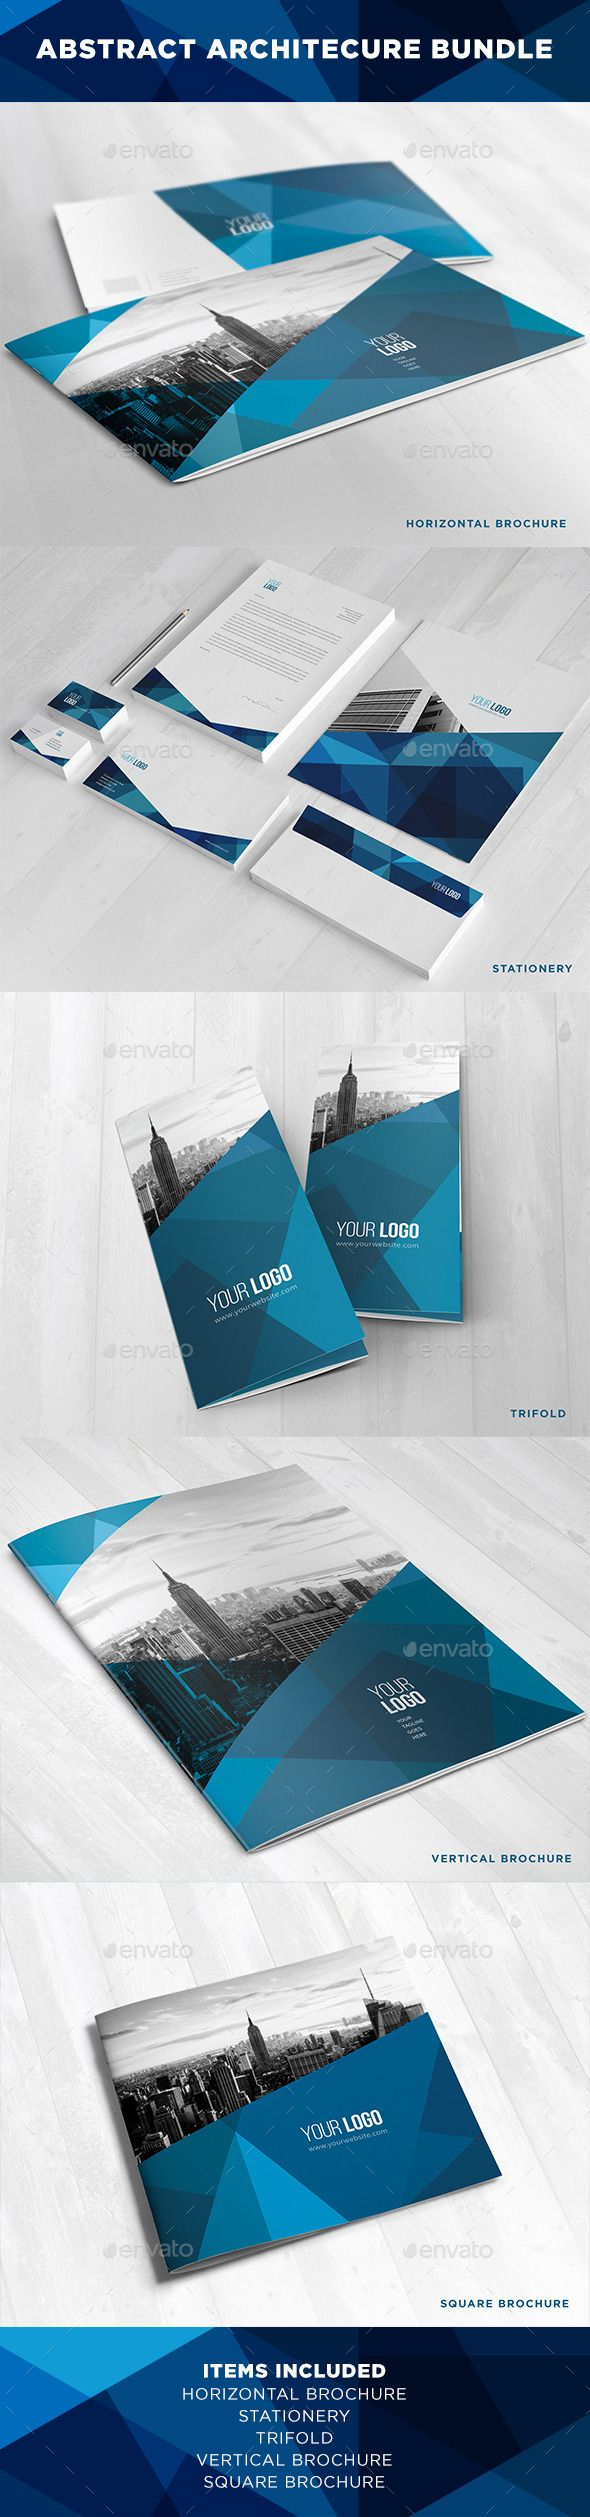 Abstract Architecture Bundle - Brochures Print Templates